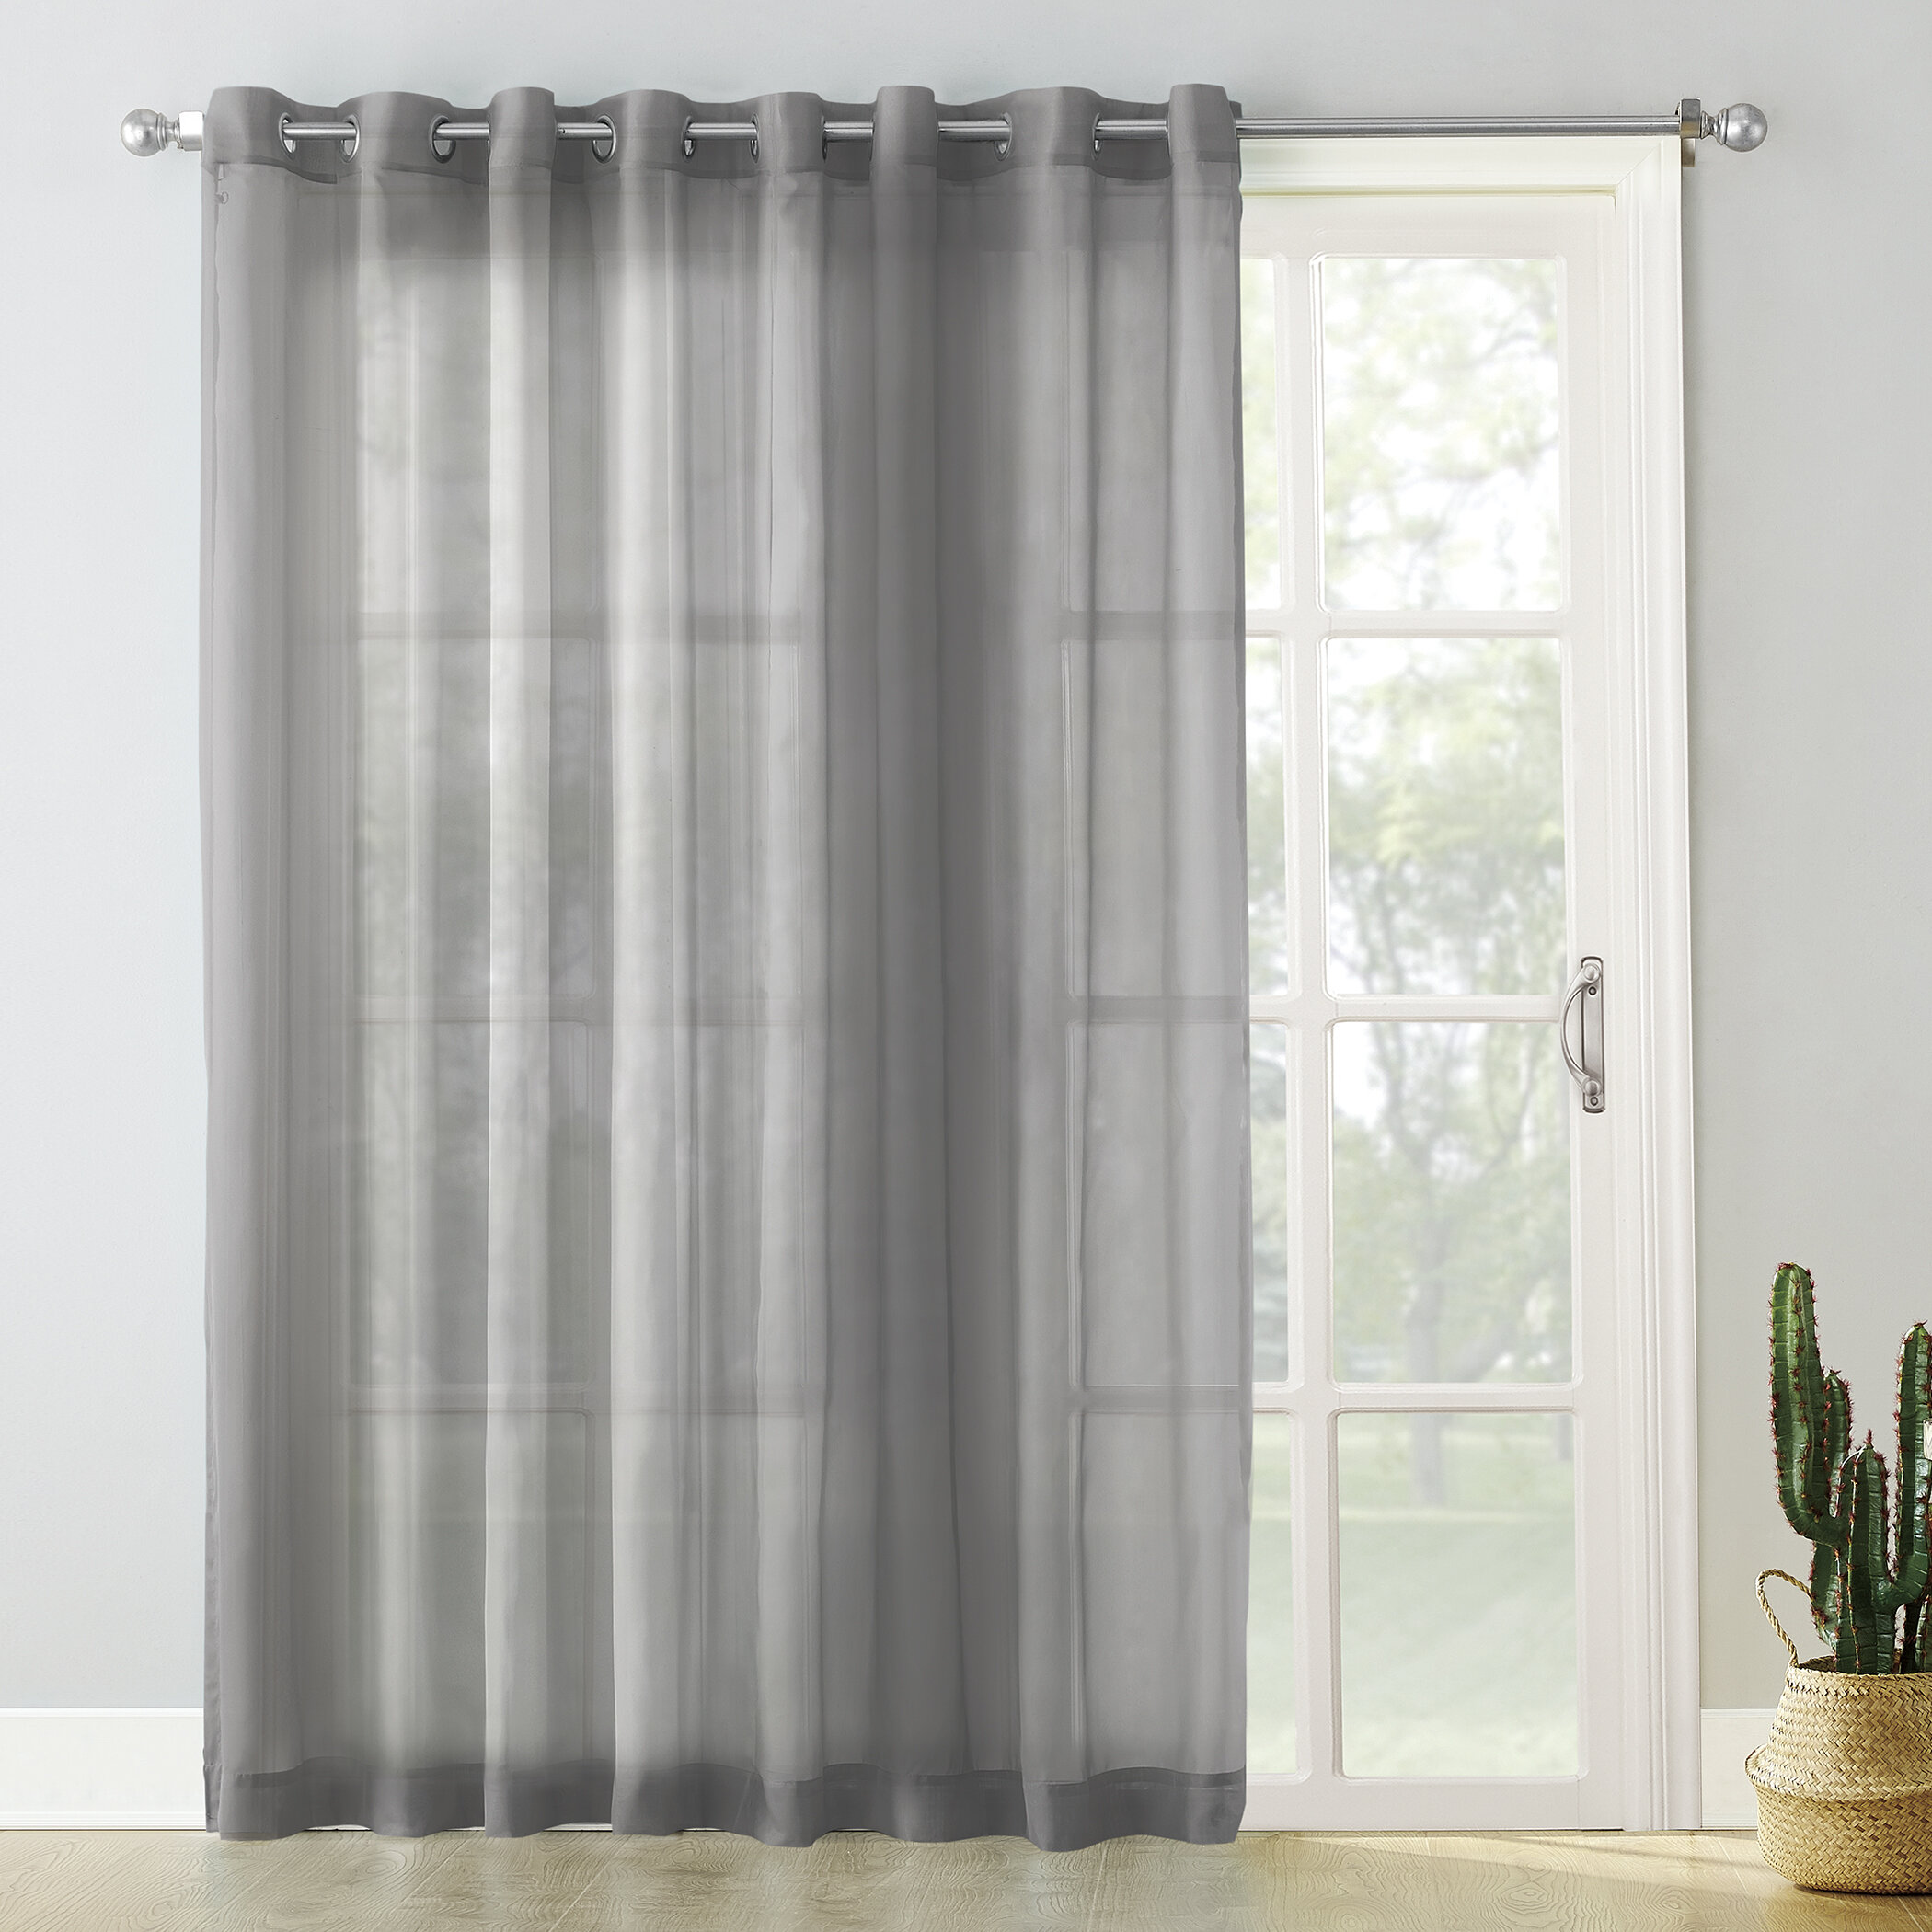 marker curtain ideas voile of drapes doors fabric set bathroom white sheer curtains wool